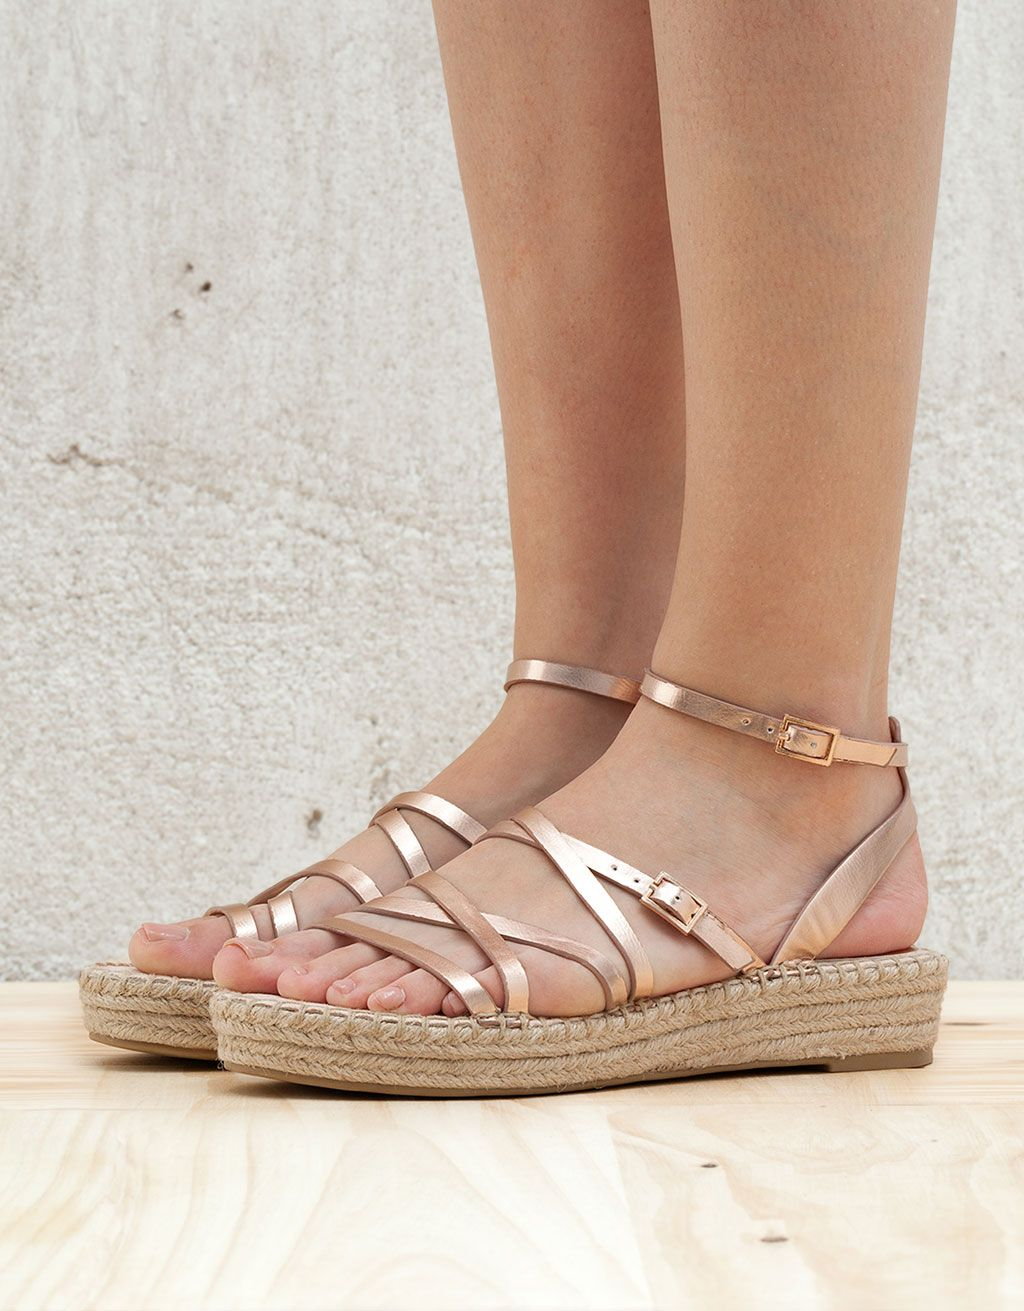 d5e531a27 BSK metallic strappy jute sandals in 2019 | These shoes are made for ...